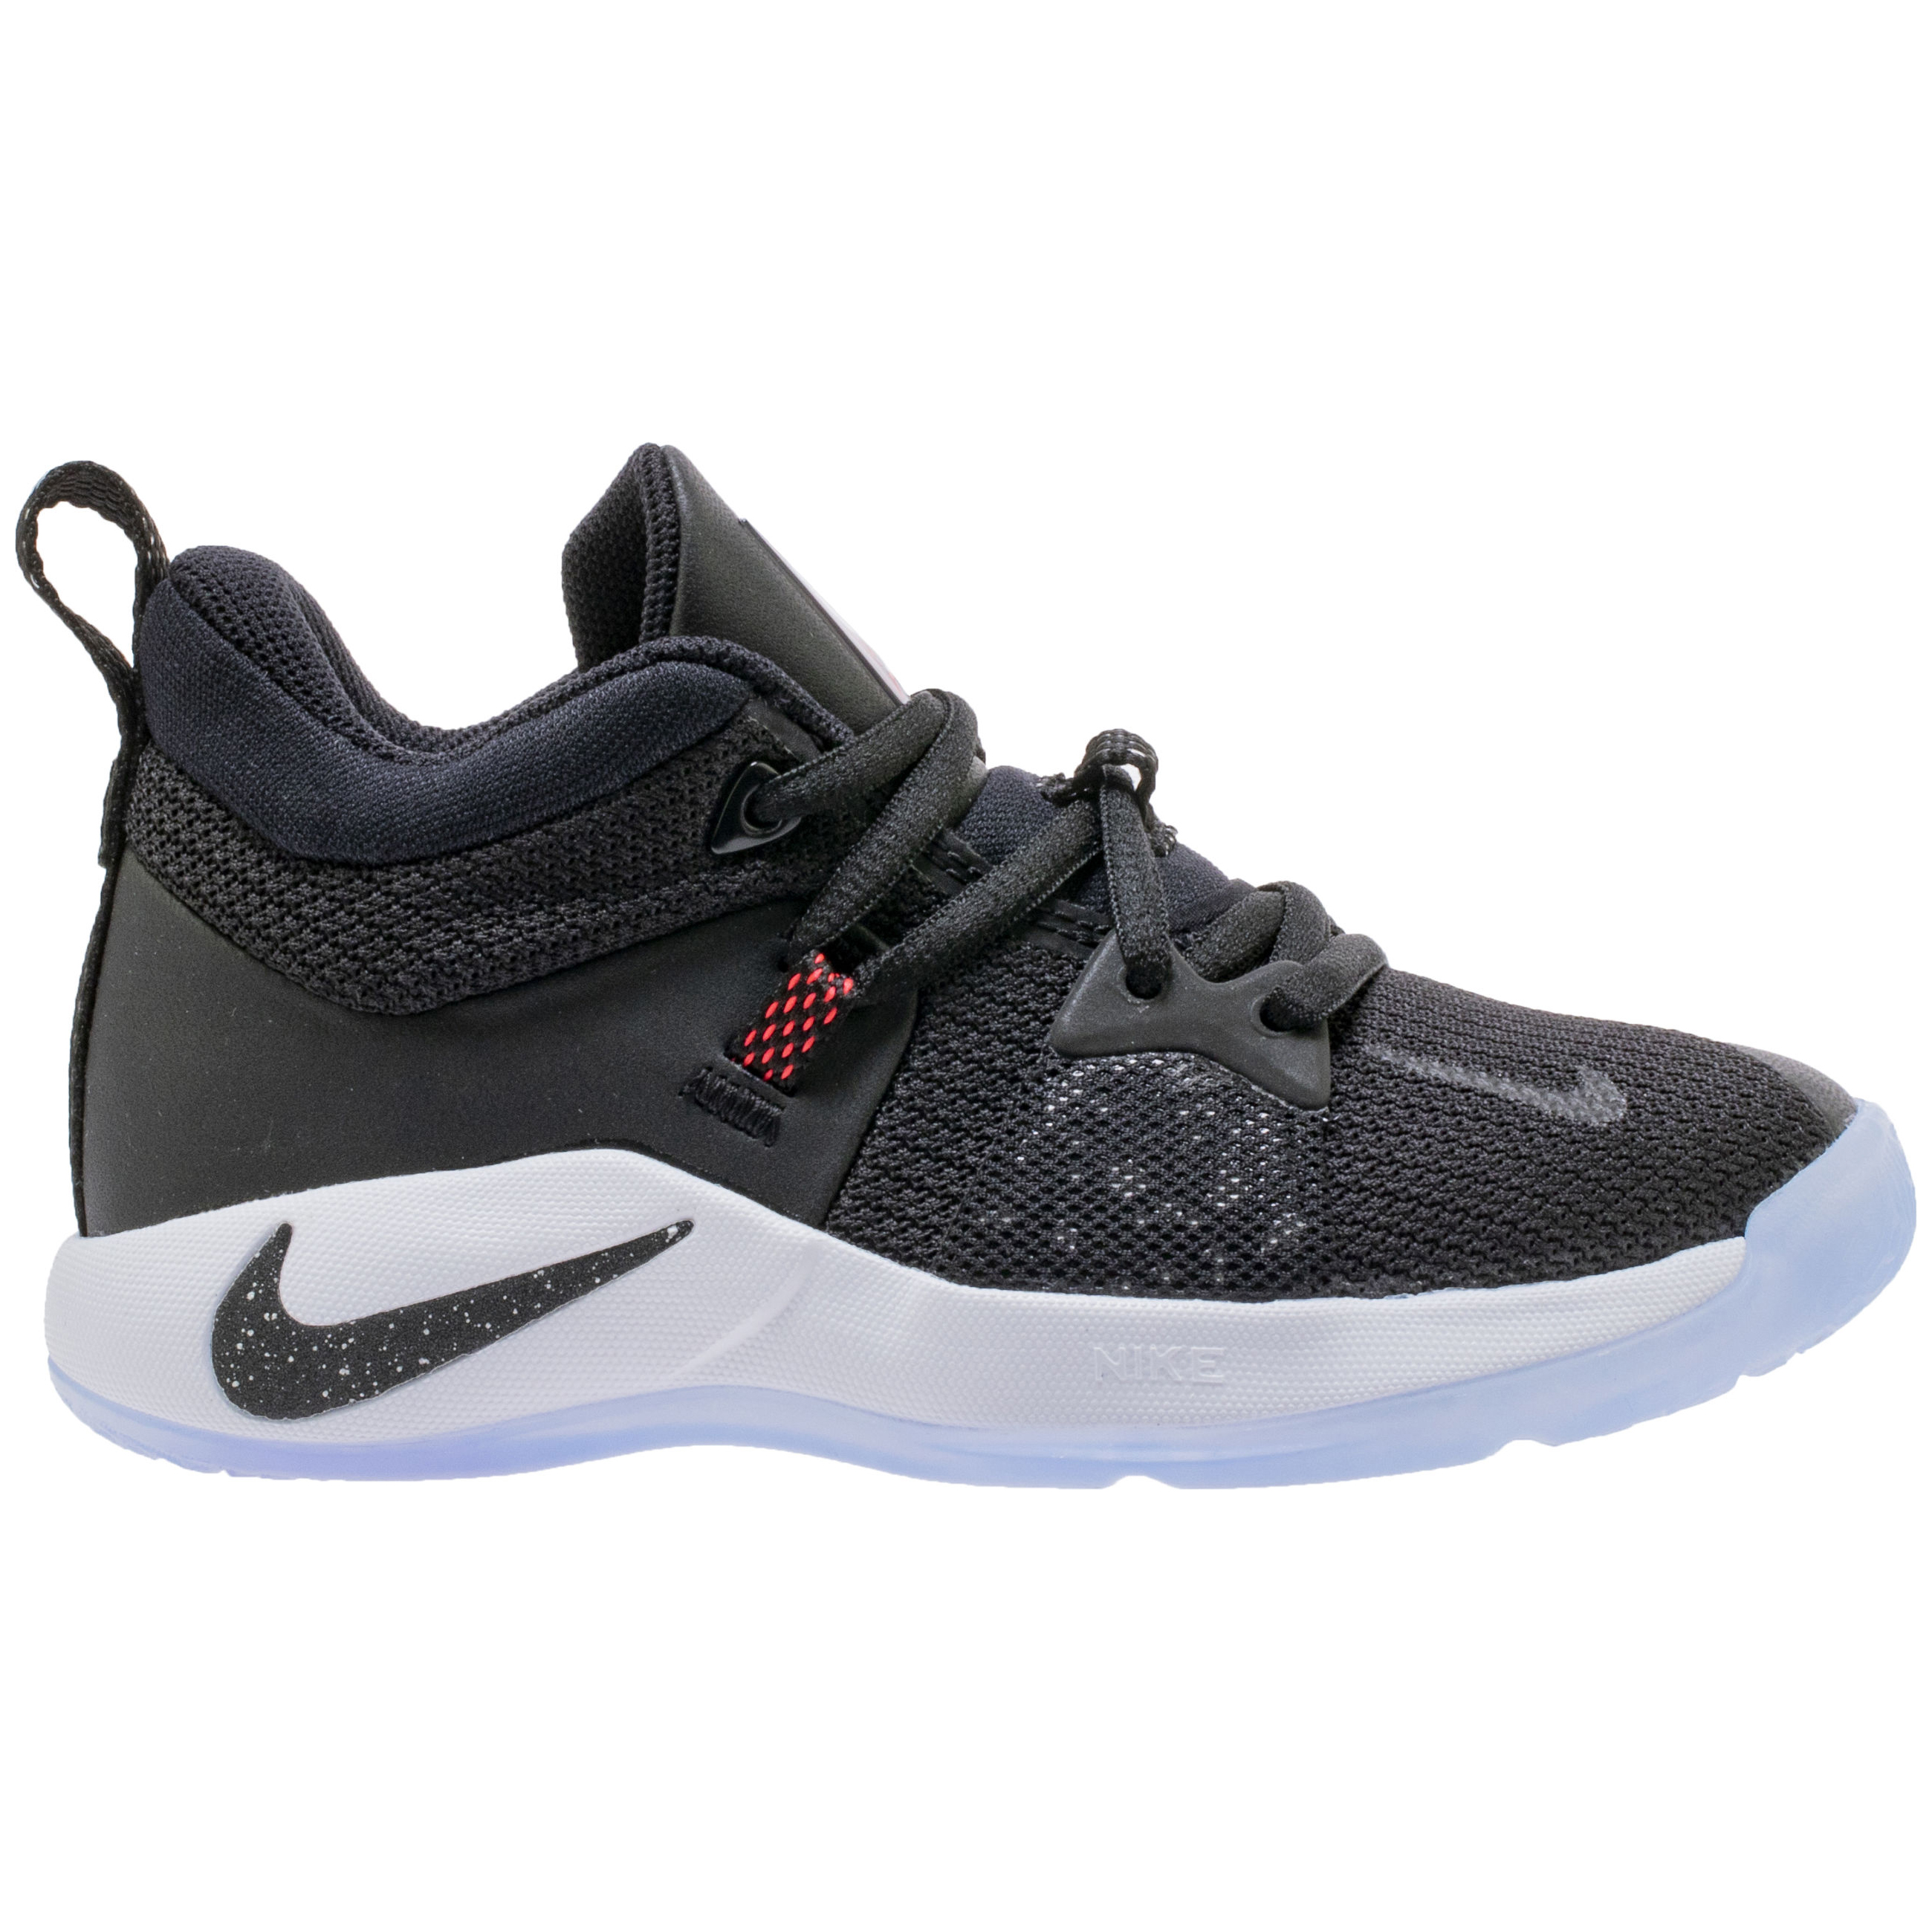 new concept 023b4 48ab0 A New Nike PG 2 'Black/White/Red' with Leather is Coming for ...